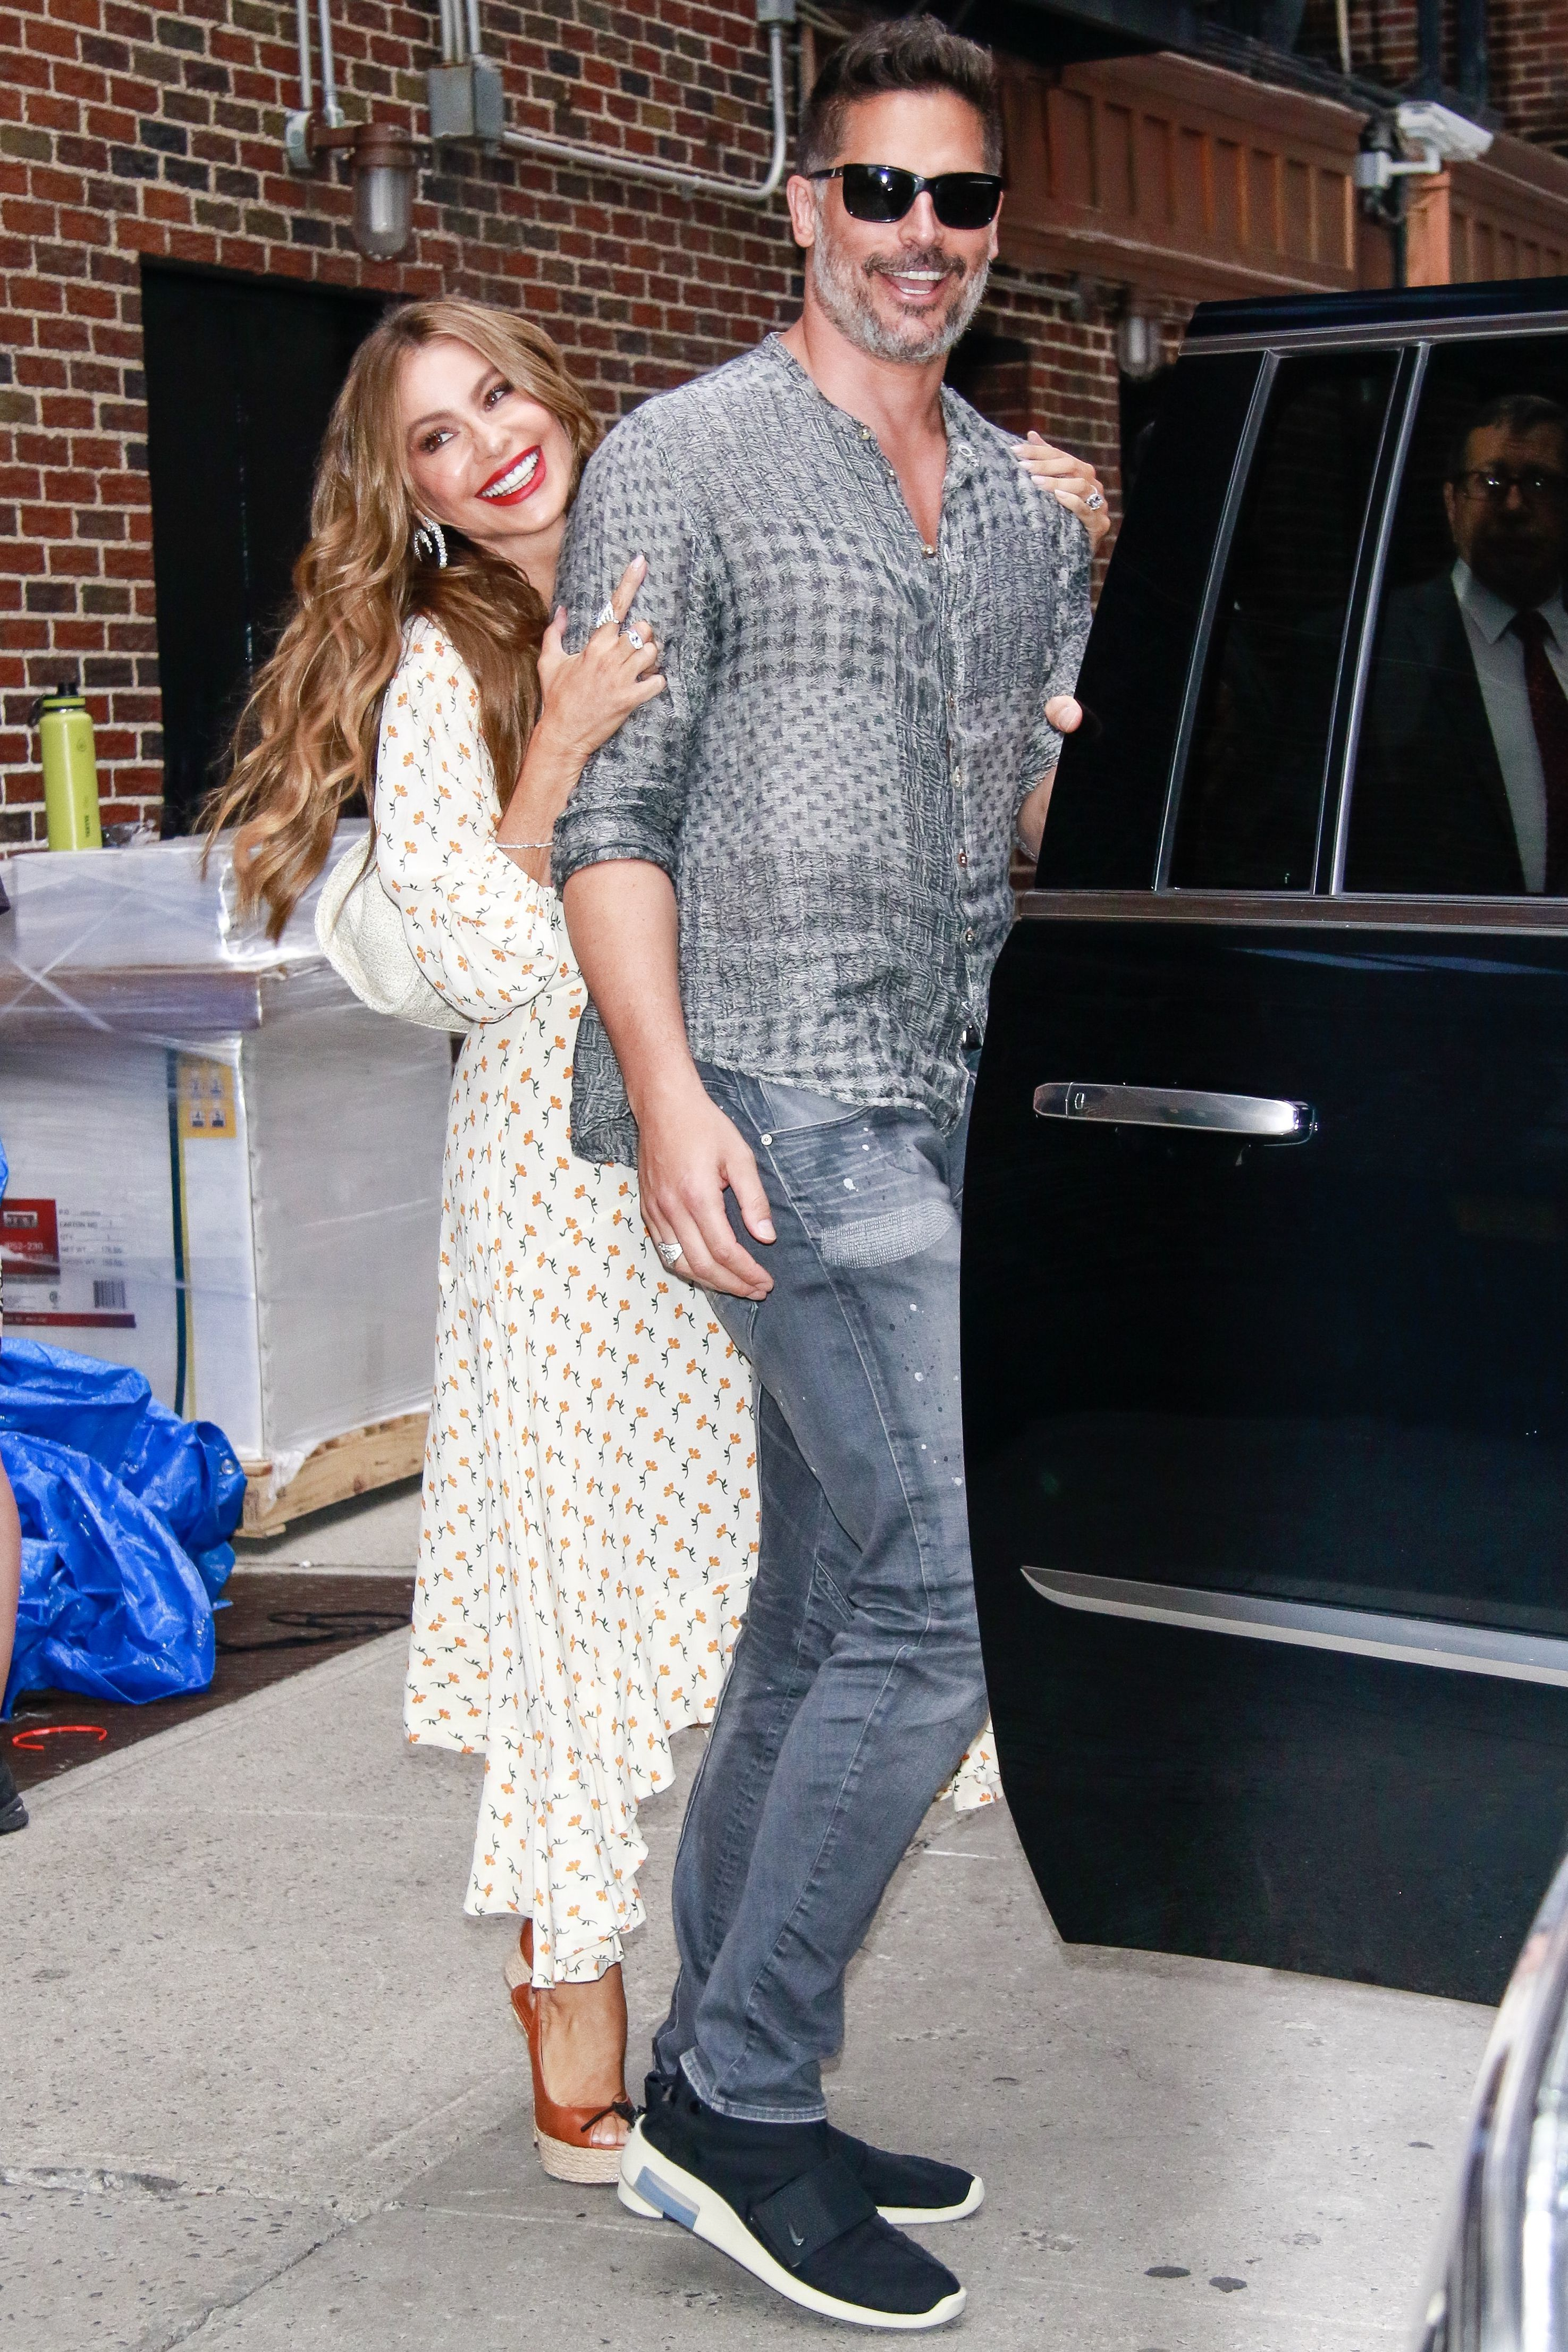 Sofia Vergara and Joe Manganiello looked so cute while leaving 'The Late Show With Stephen Colbert' in New York City on July 17, 2019.